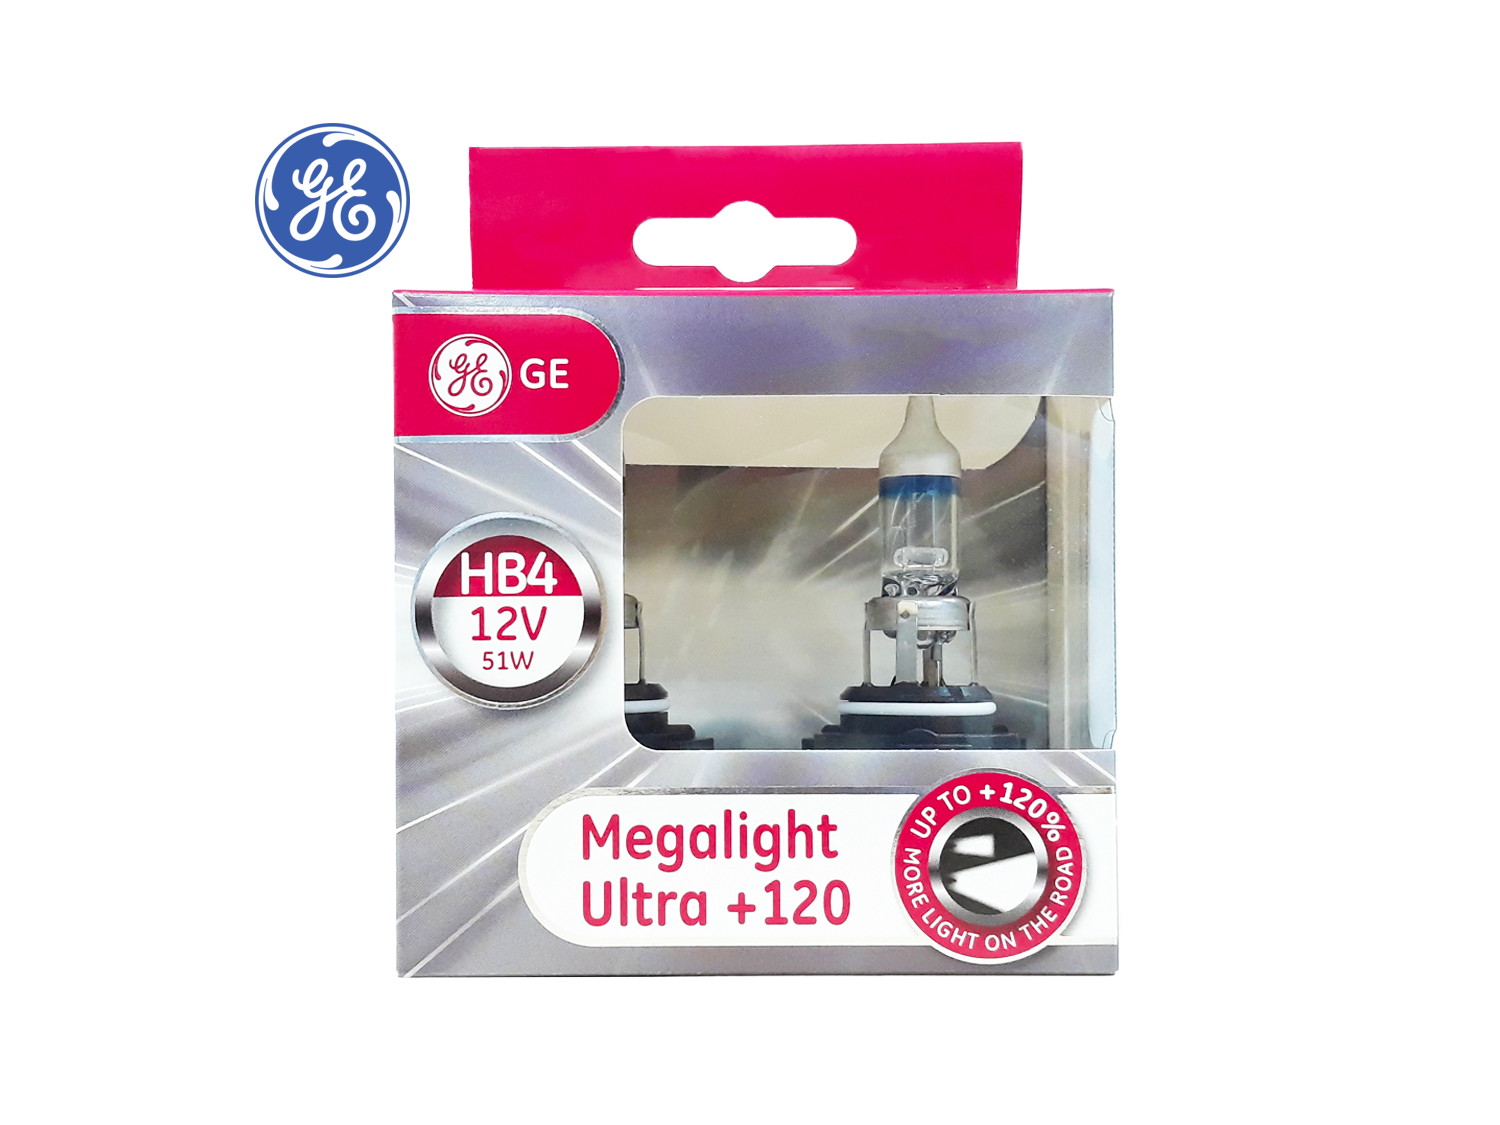 GE HB4 +120% Megalight Ultra Headlight lamps ; SKU: 98437